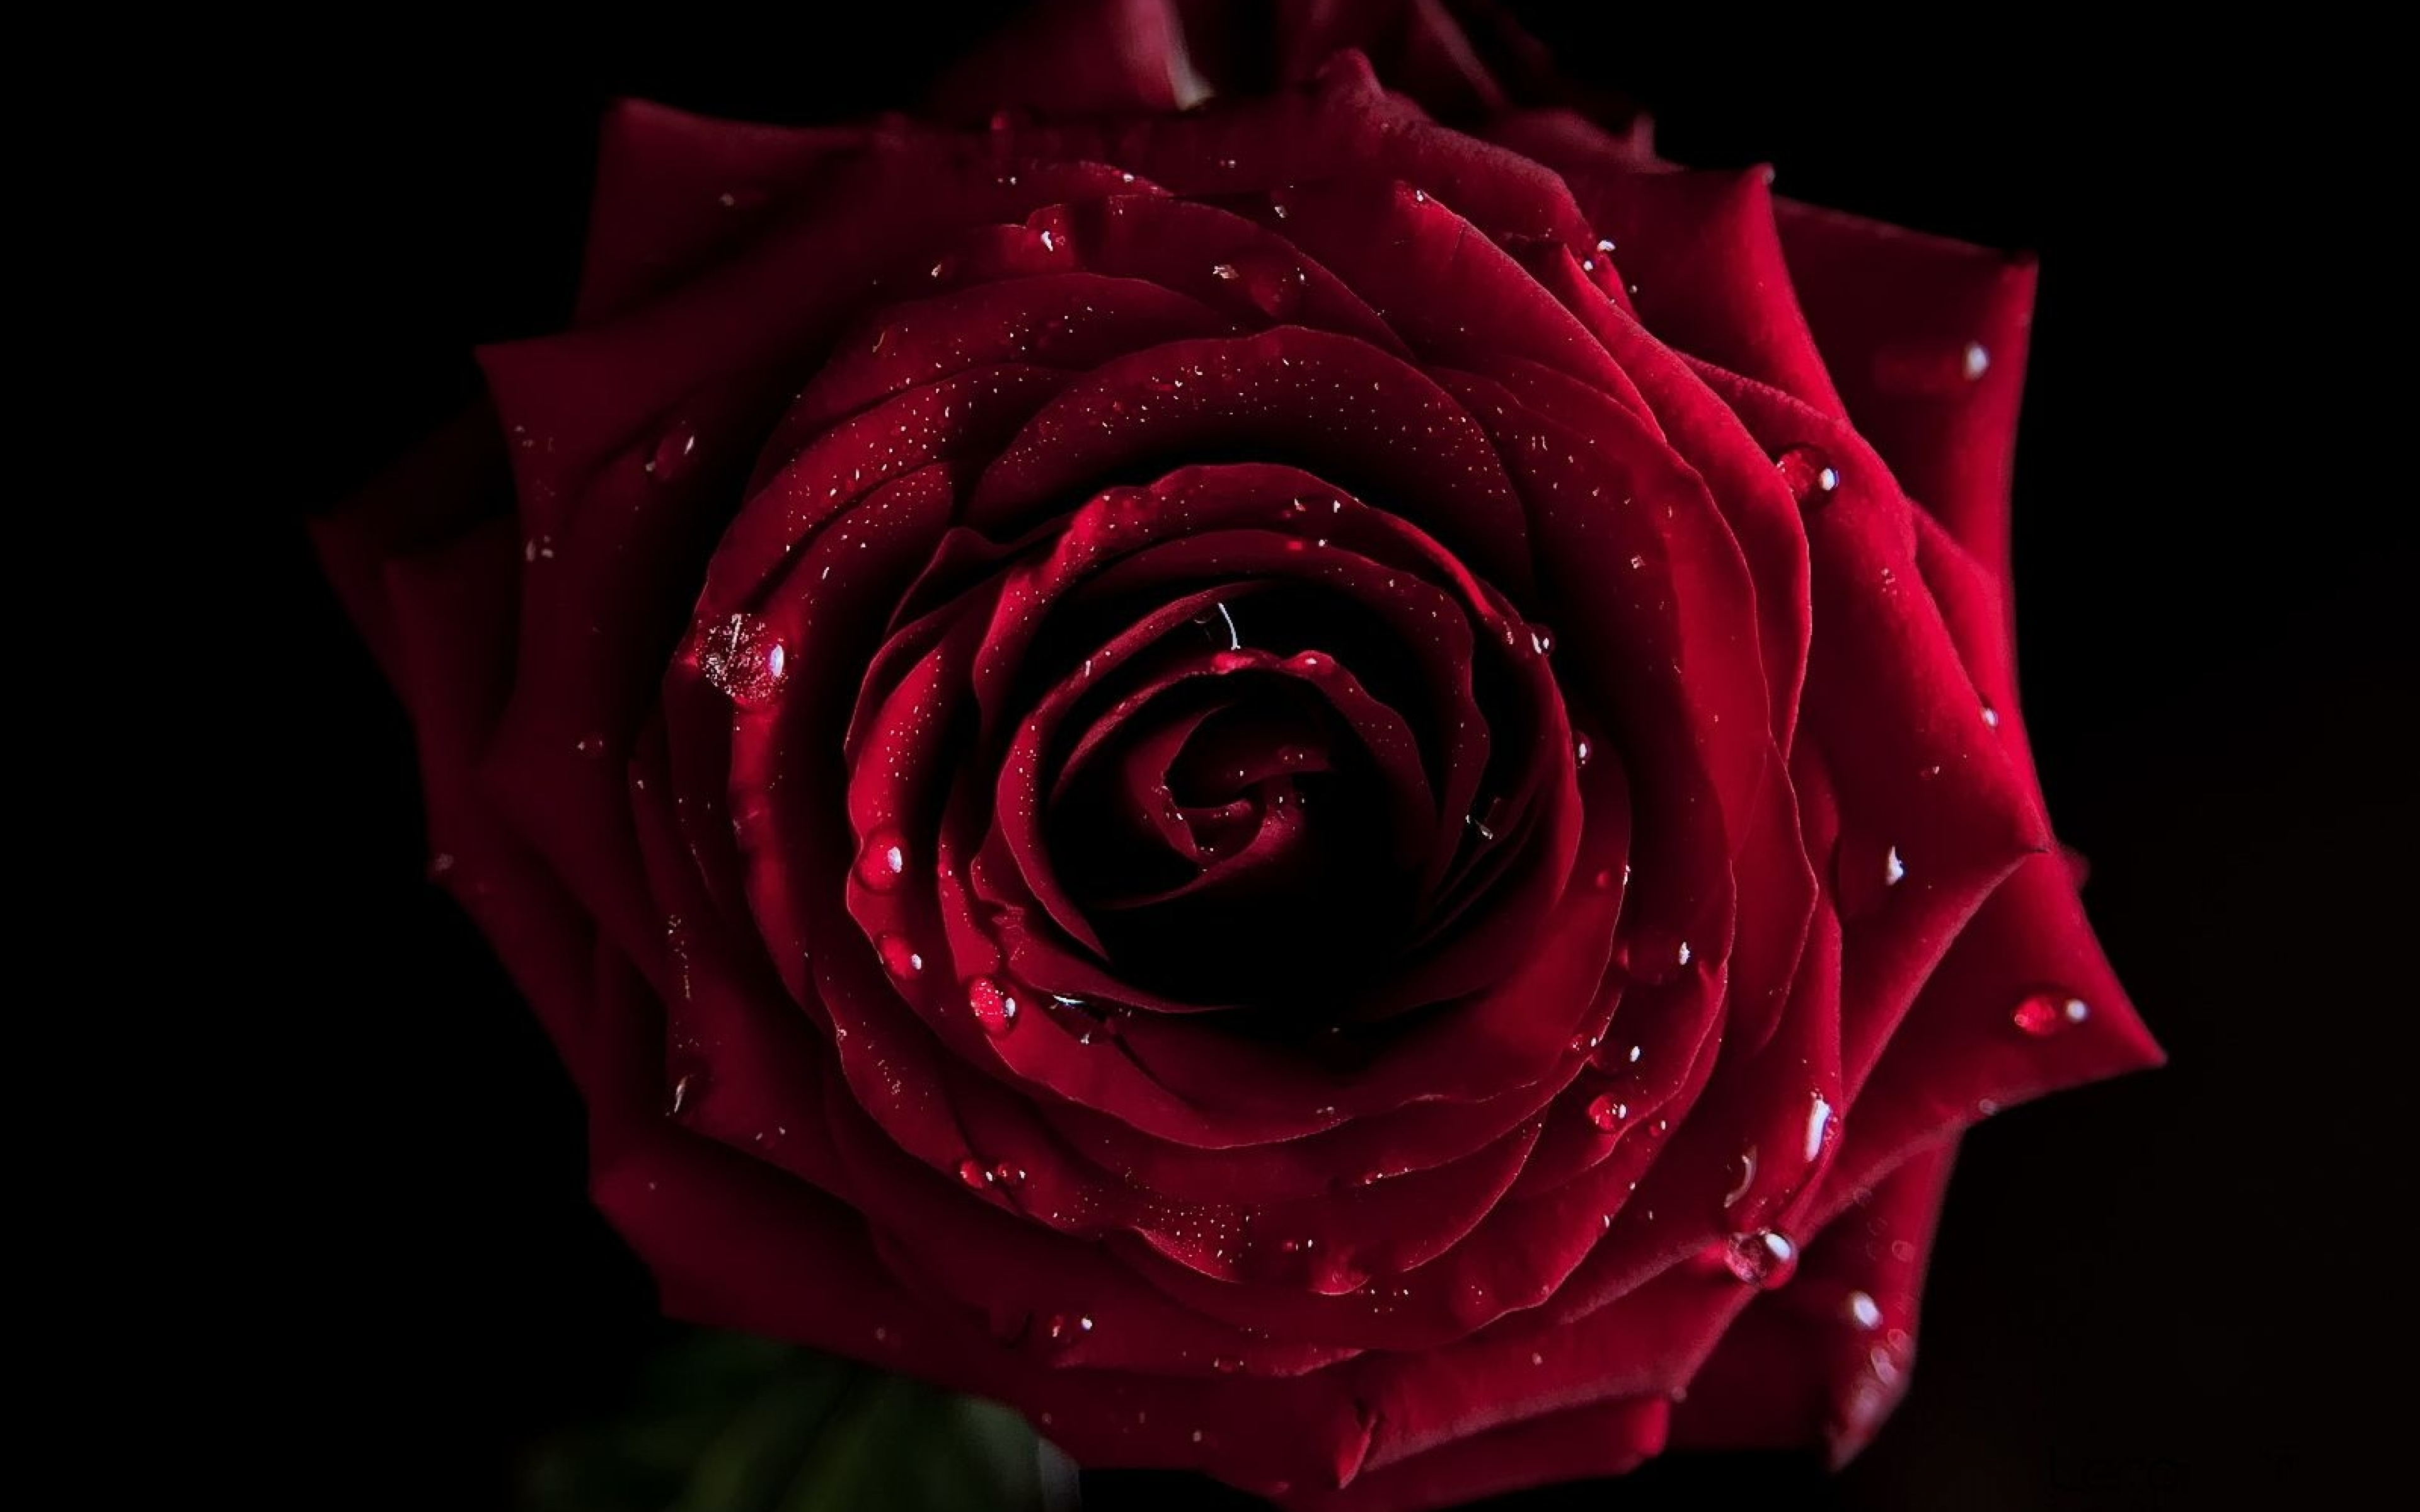 Red Rose Hd Wallpapers 1080p Dark Red Flower Hd 100025